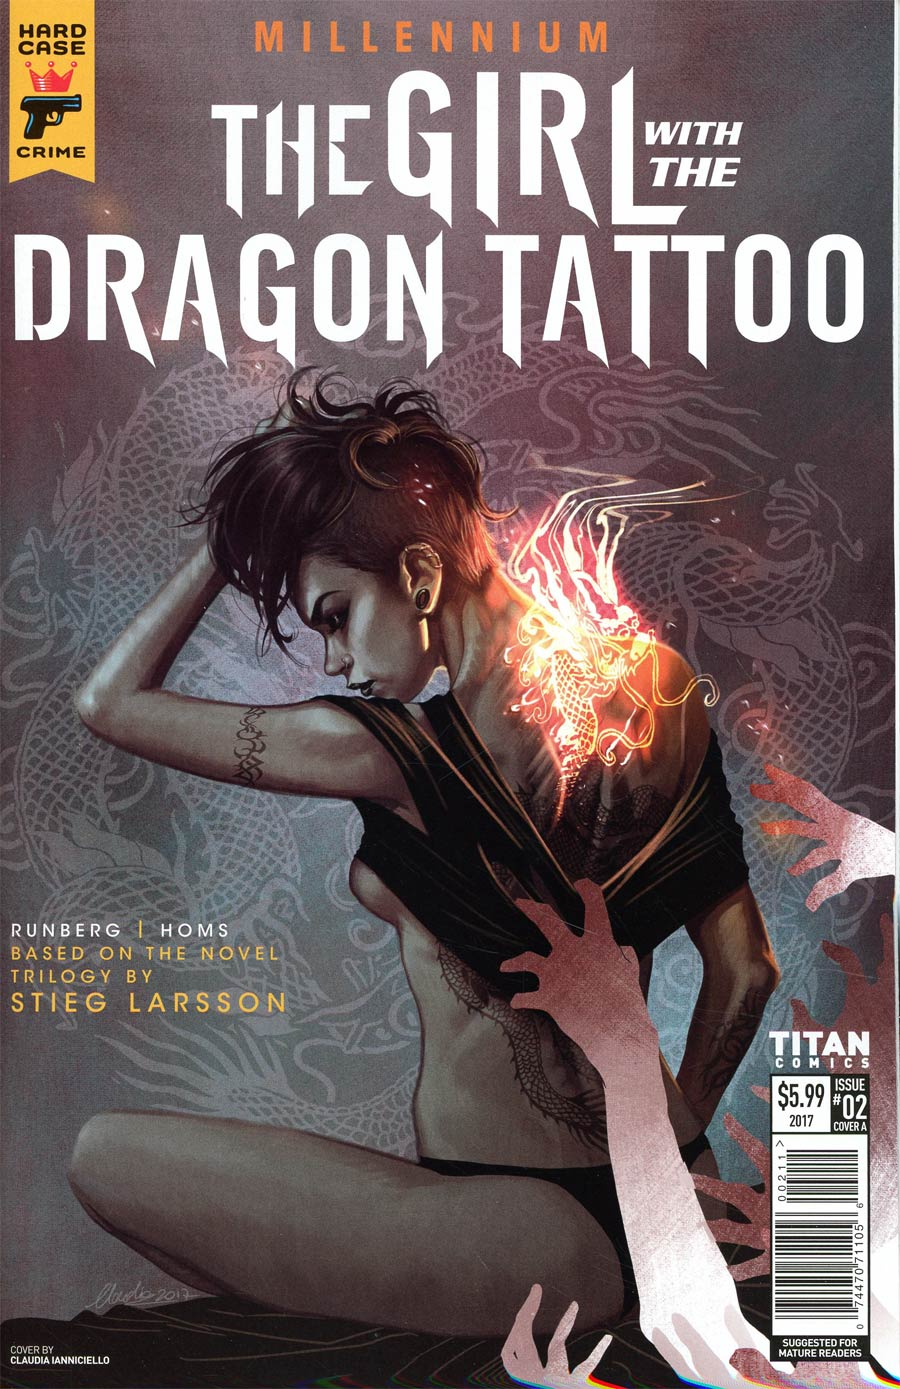 Hard Case Crime Millennium Girl With The Dragon Tattoo #2 Cover A Regular Claudia Iannicello Cover